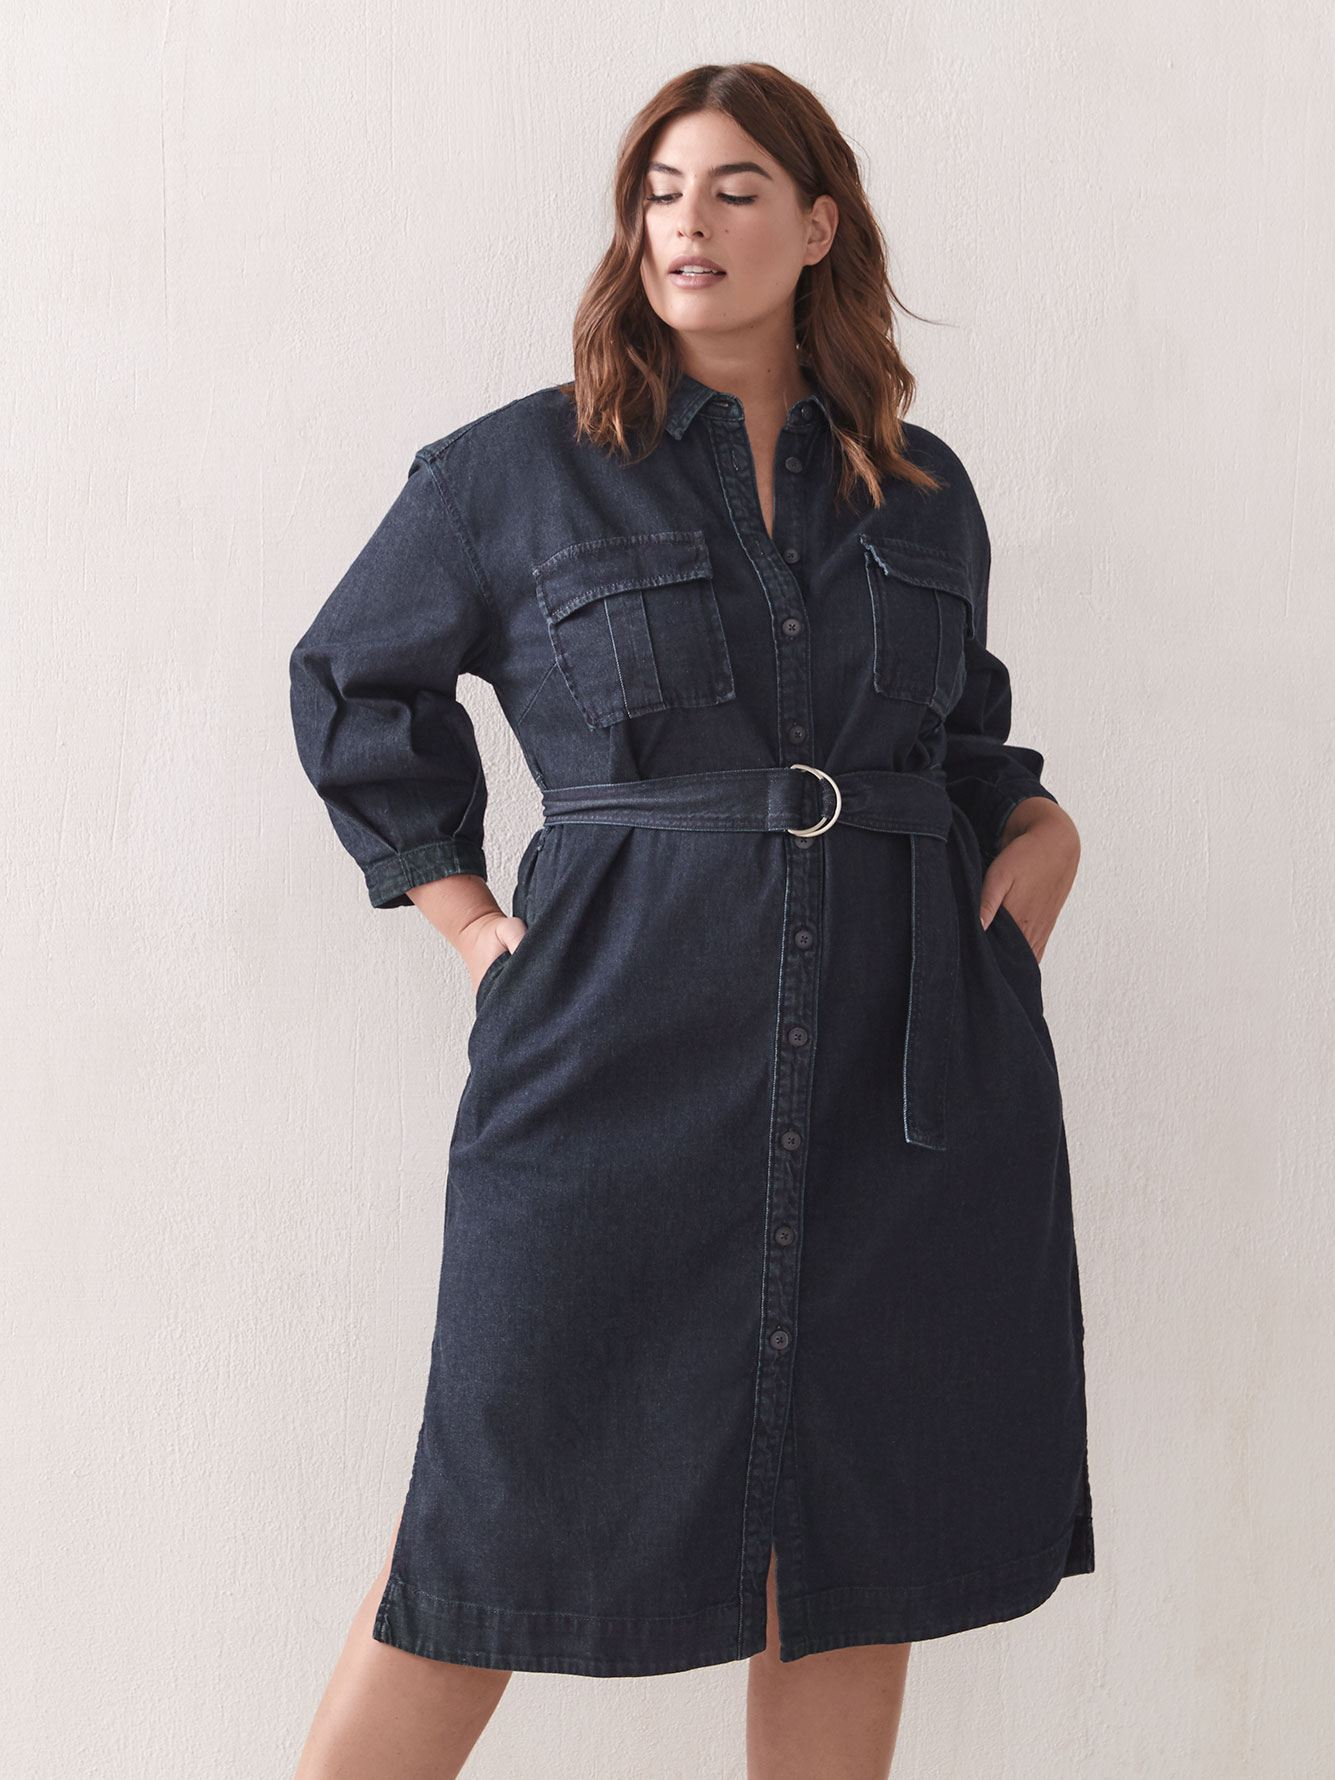 Belted Button-Down Denim Dress - Addition Elle